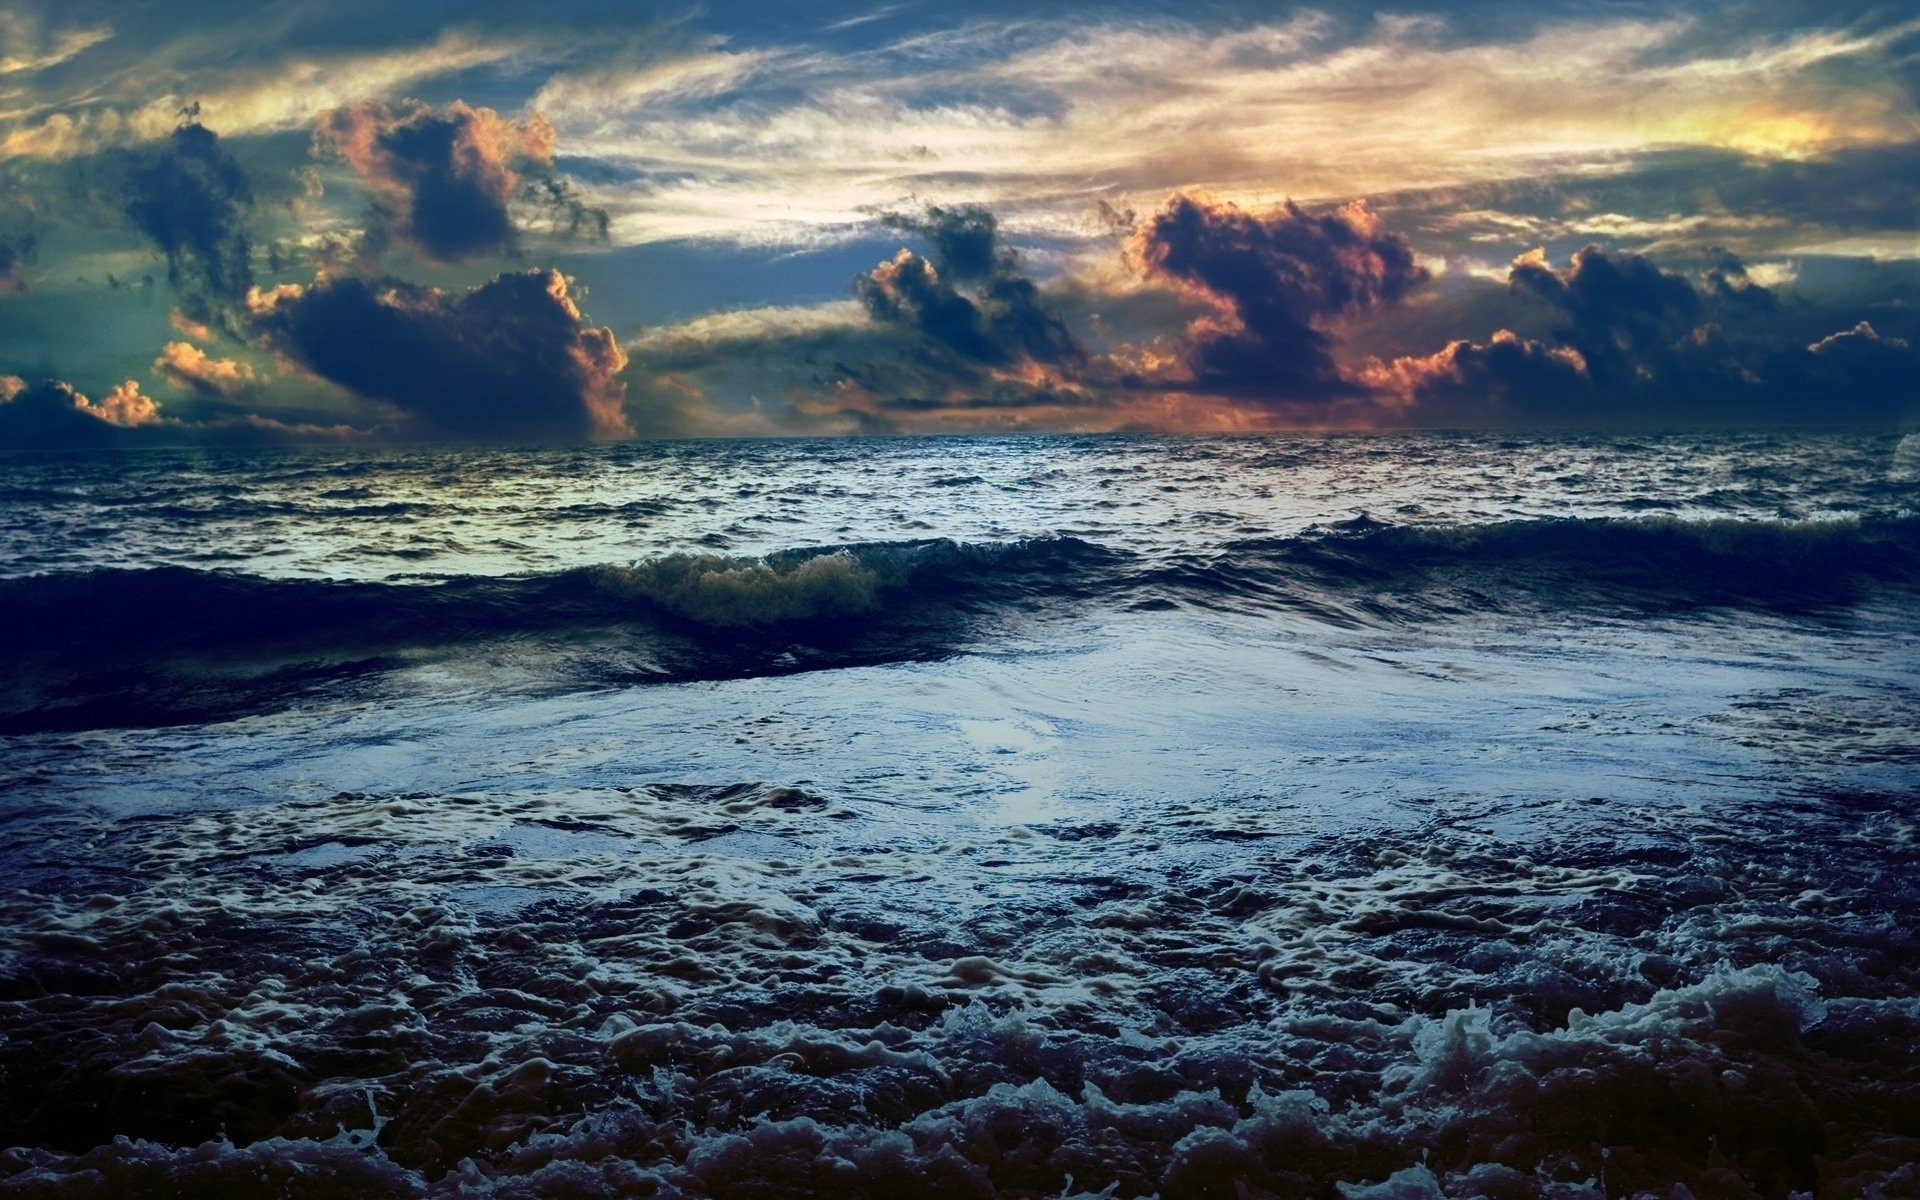 1920x1200 Clouds nature horizon storm seascapes sky sea ocean sky clouds sunset  sunrise beaches waves wallpaper |  | 58937 | WallpaperUP